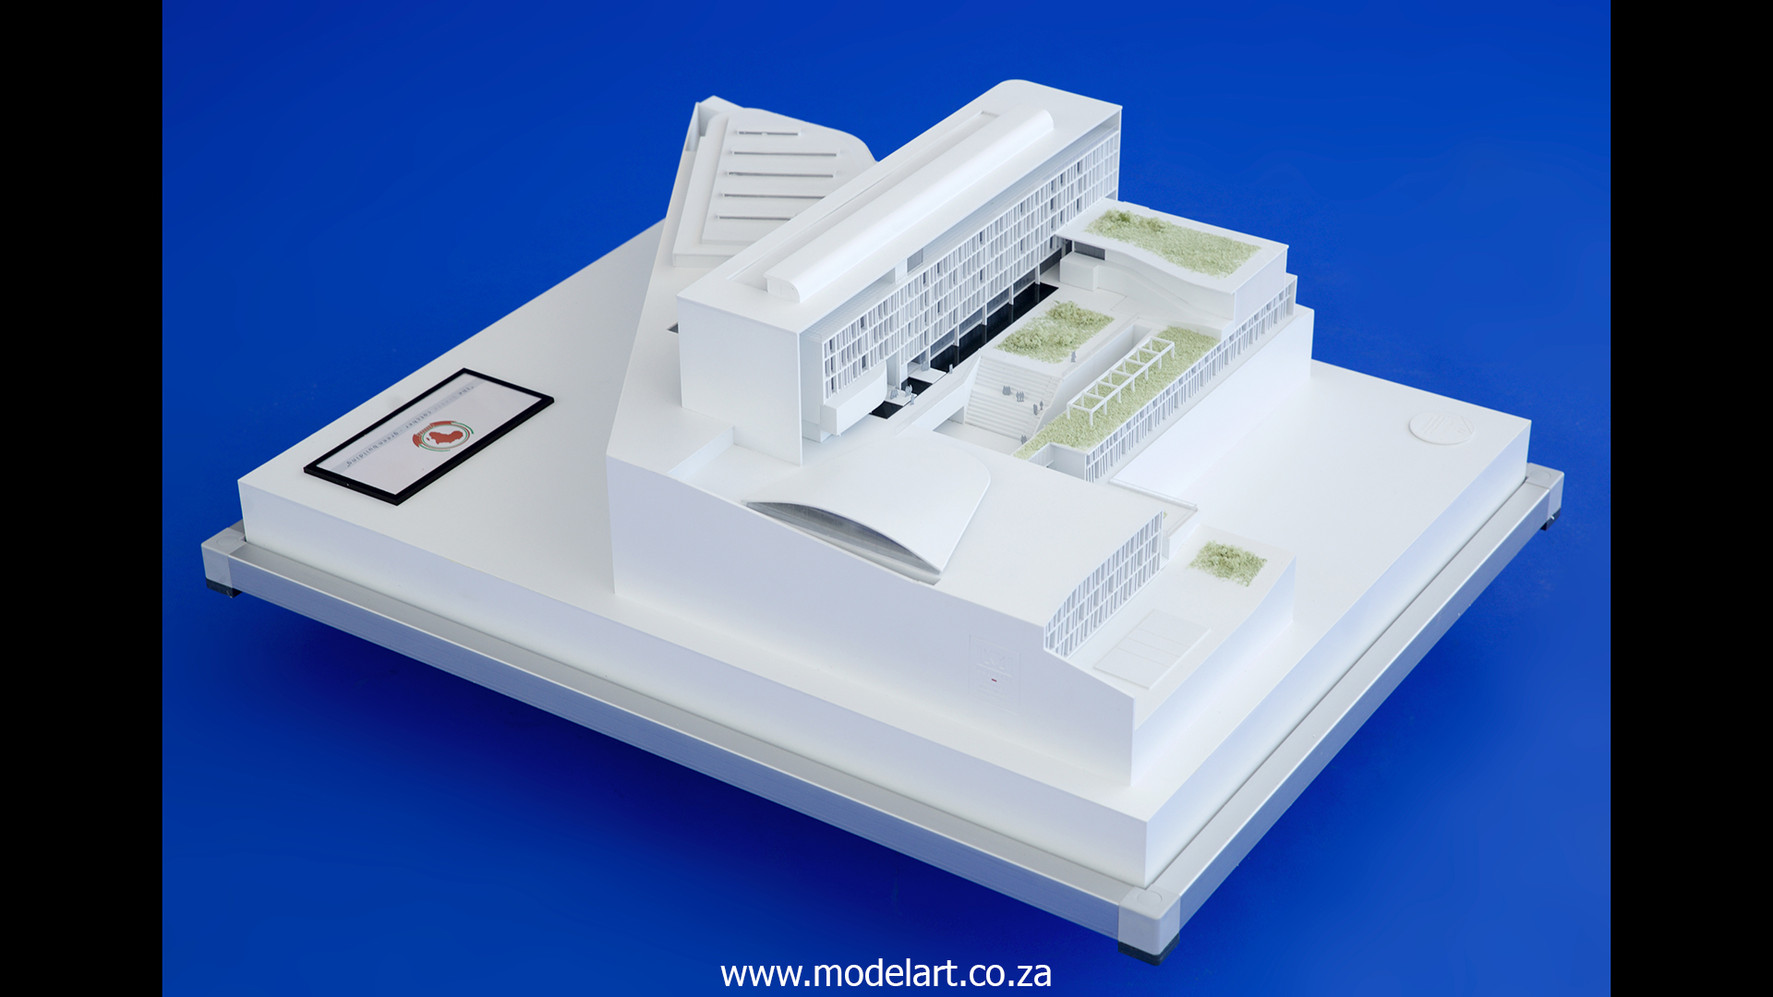 Architectural-Scale-Model-Conceptual-AU Building-1